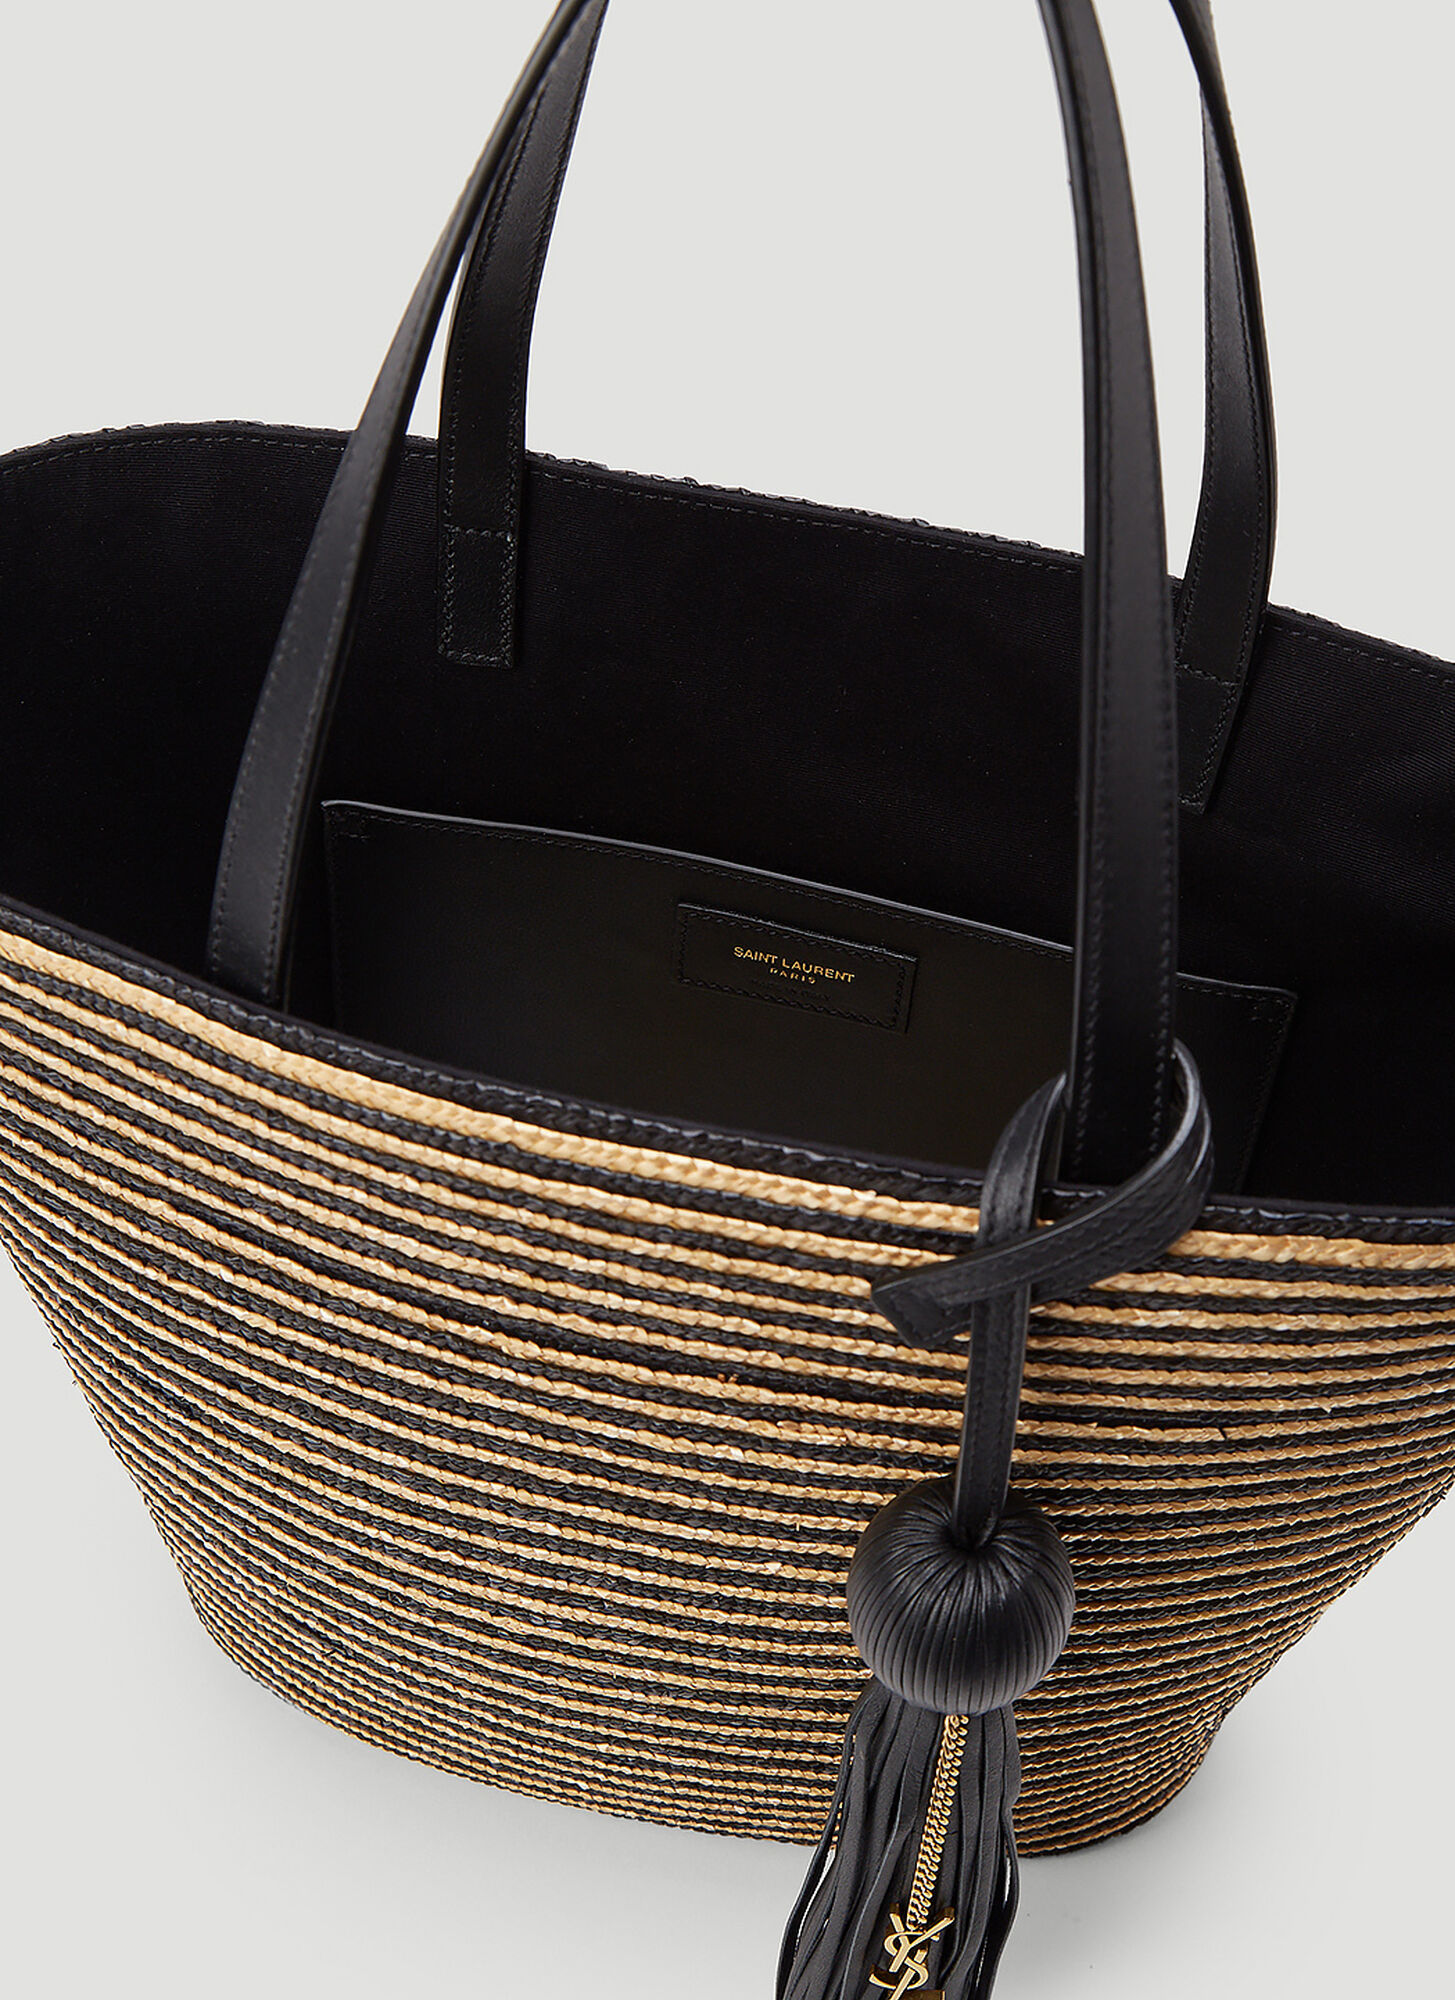 Saint Laurent Raffia Tote Bag